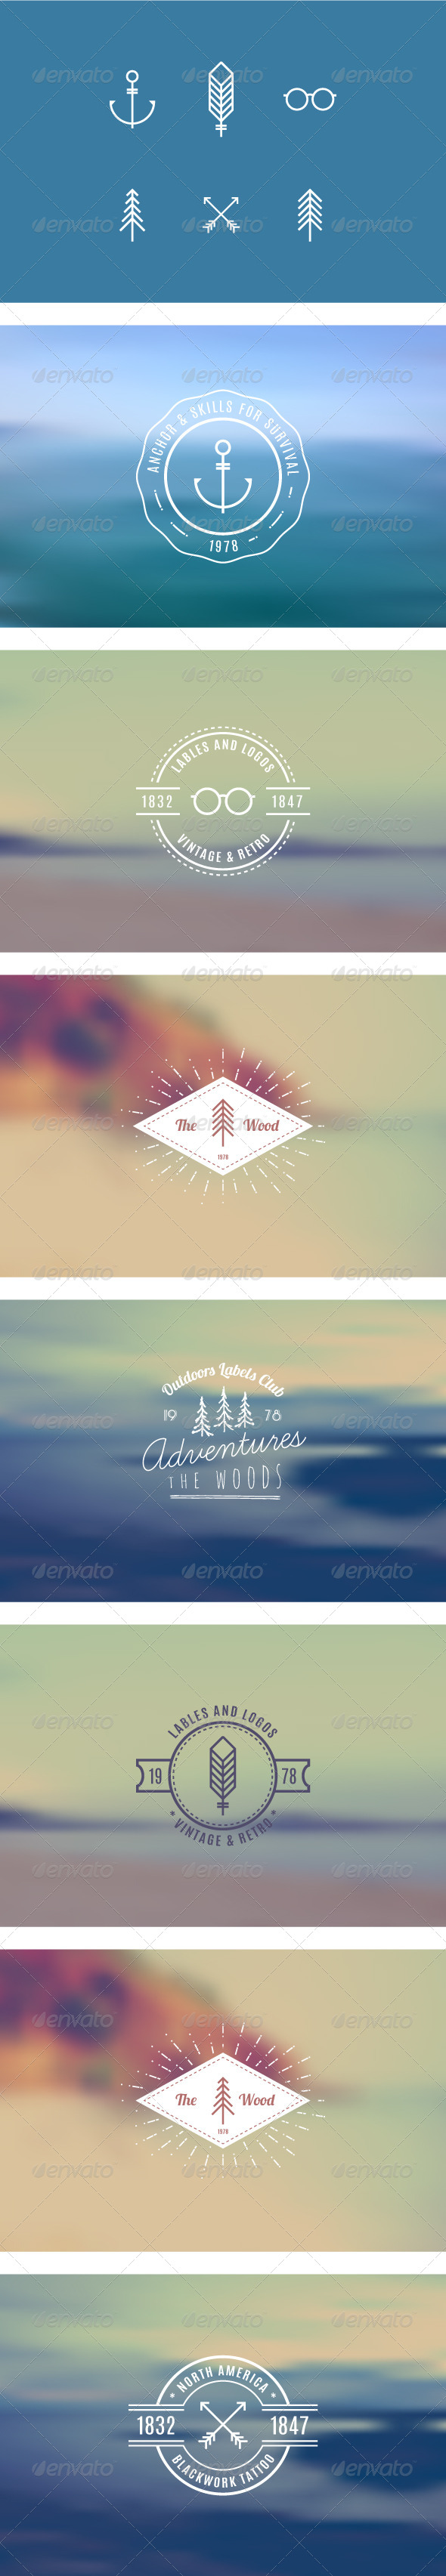 GraphicRiver Trendy Retro Vintage Insignias 8734221